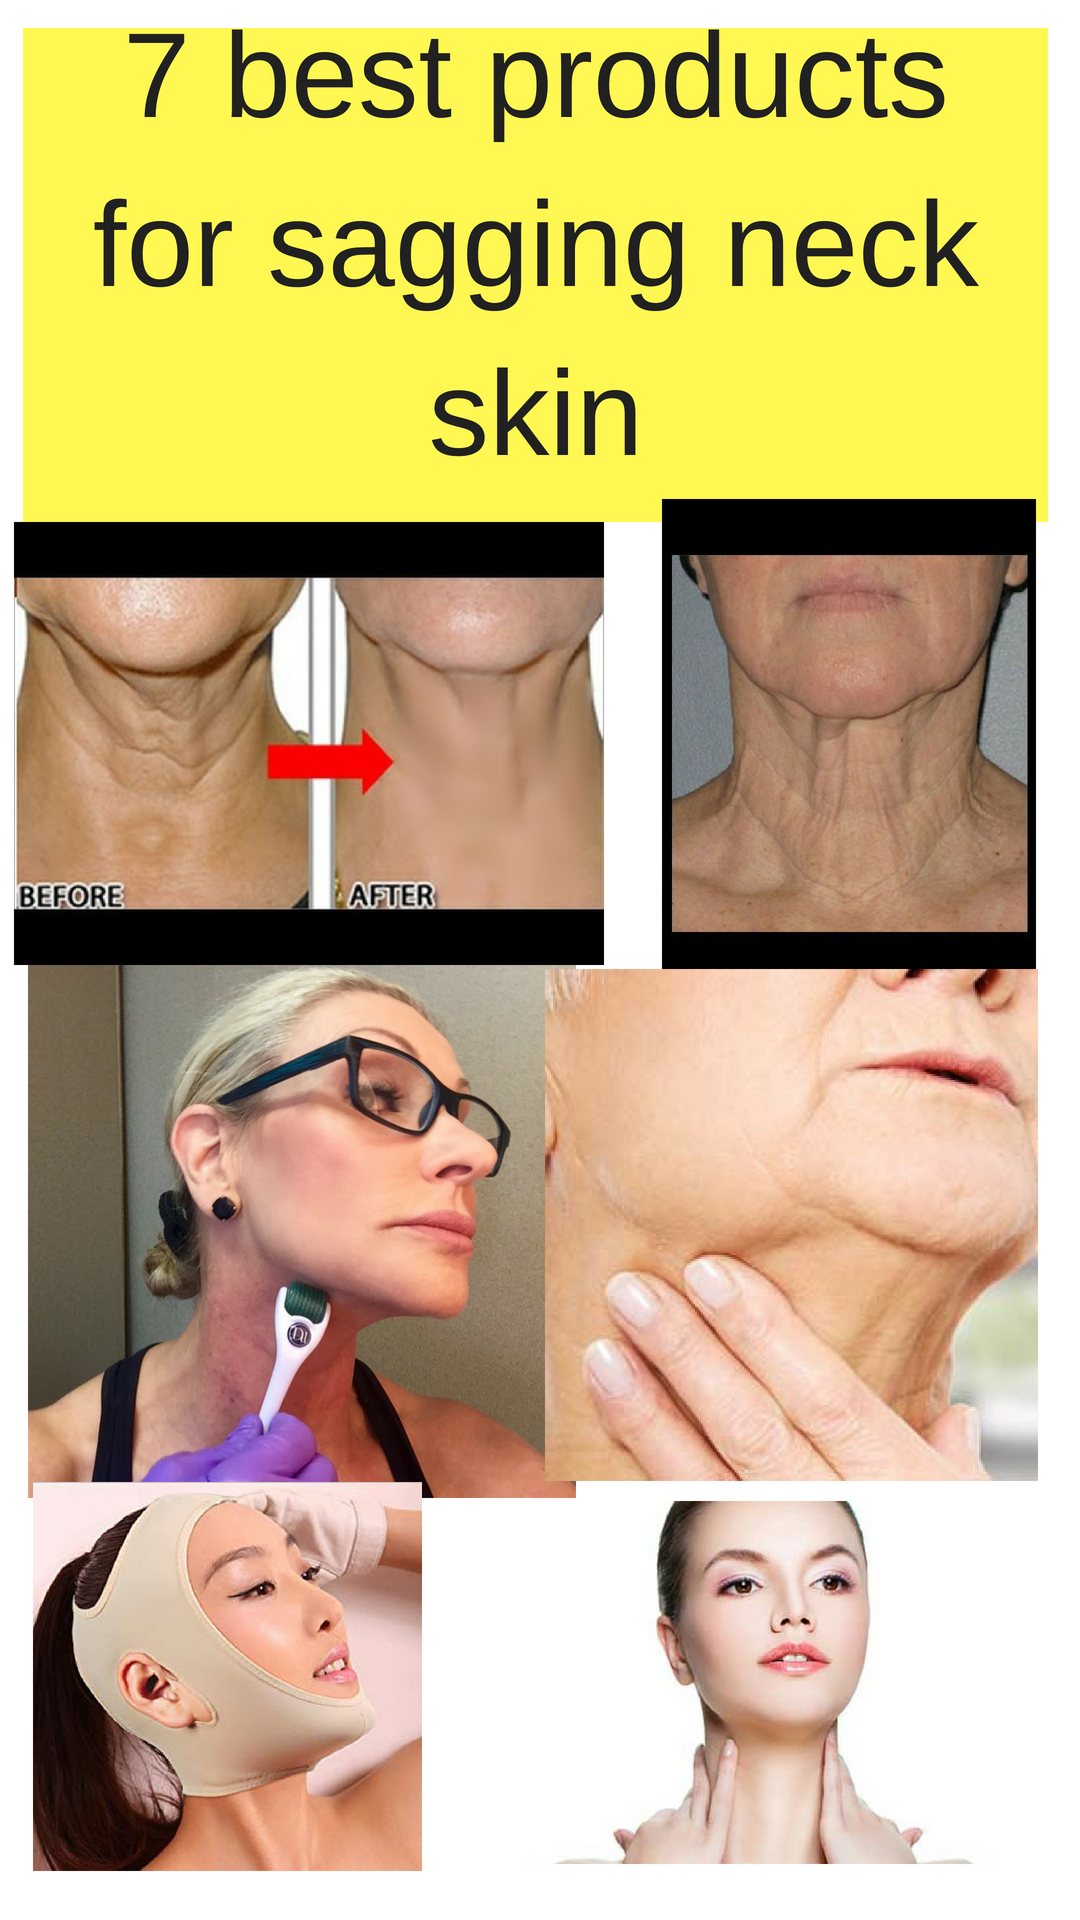 Best Products For Sagging Neck Skin The Importance Of Your Neck Is Crucial To Fighting The Signs Of Aging Loose Neck Skin Sagging Neck Skin Neck Wrinkles